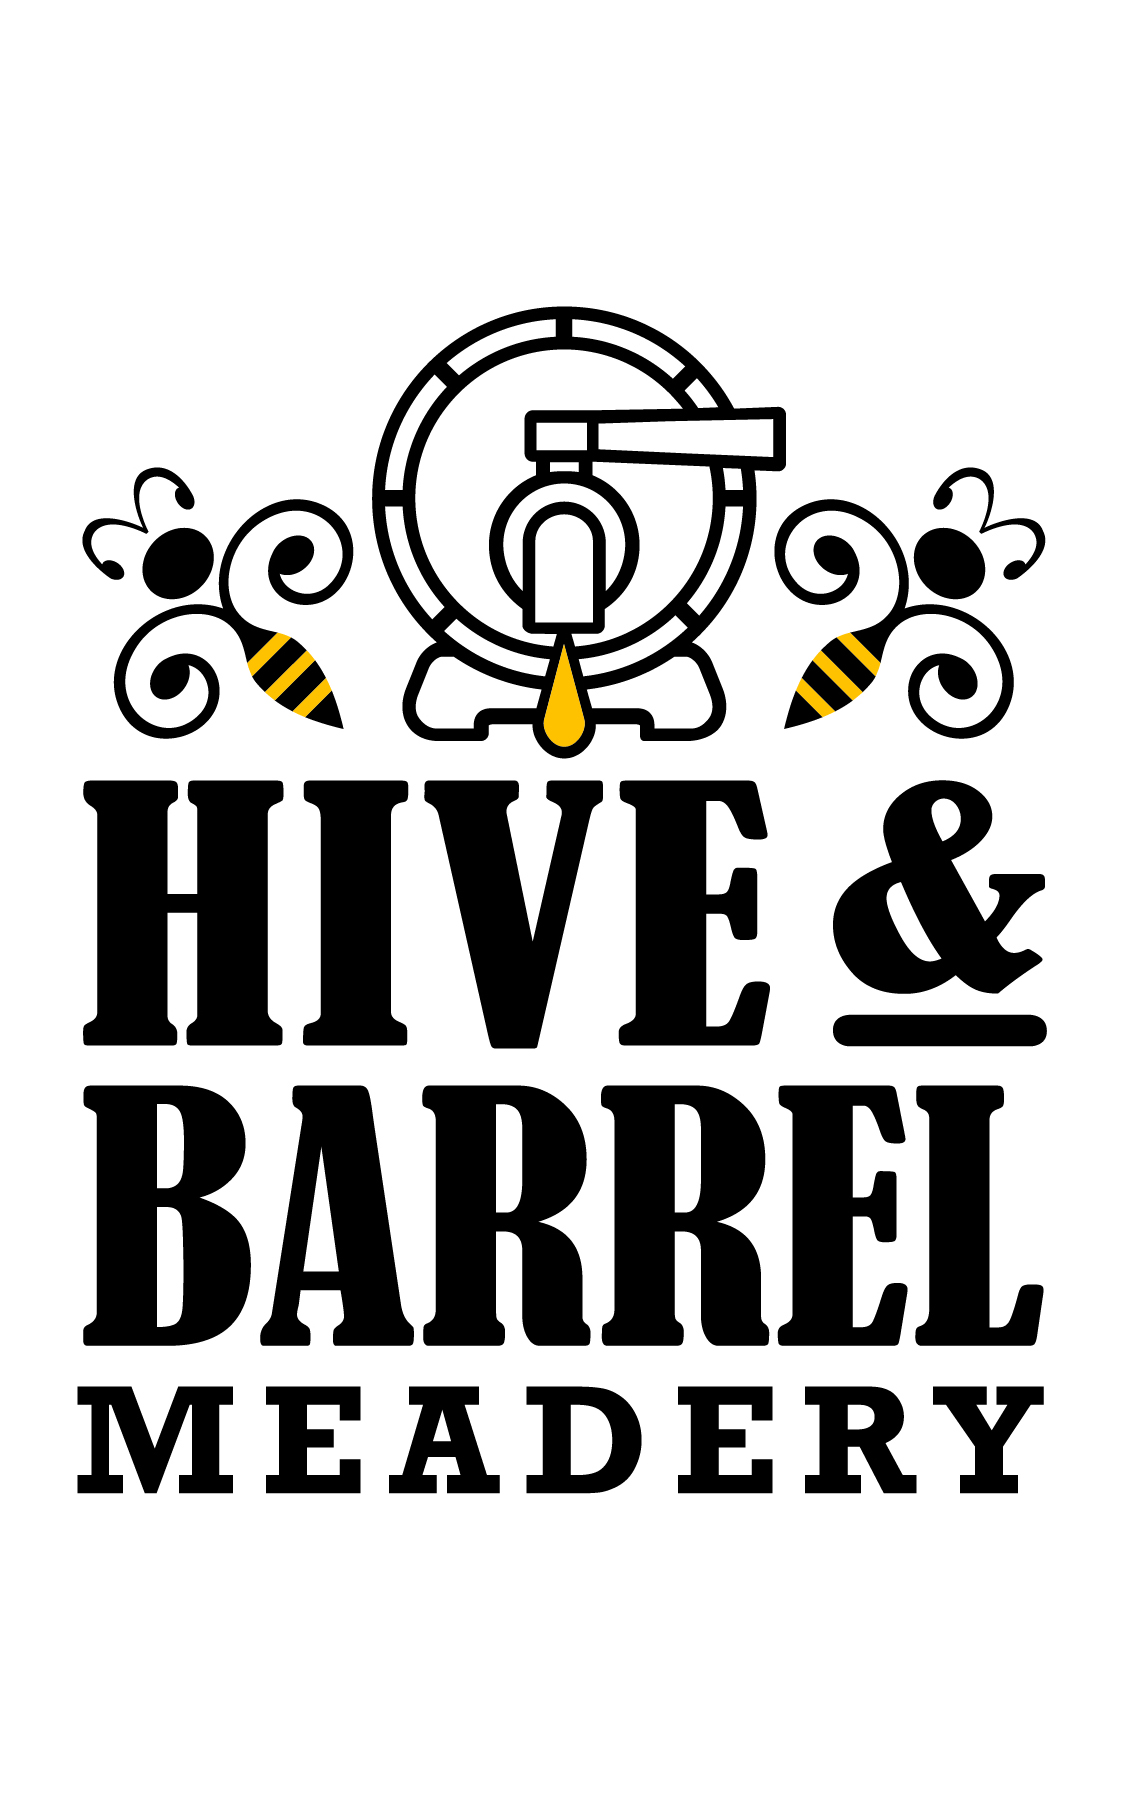 Hive And Barrel Meadery